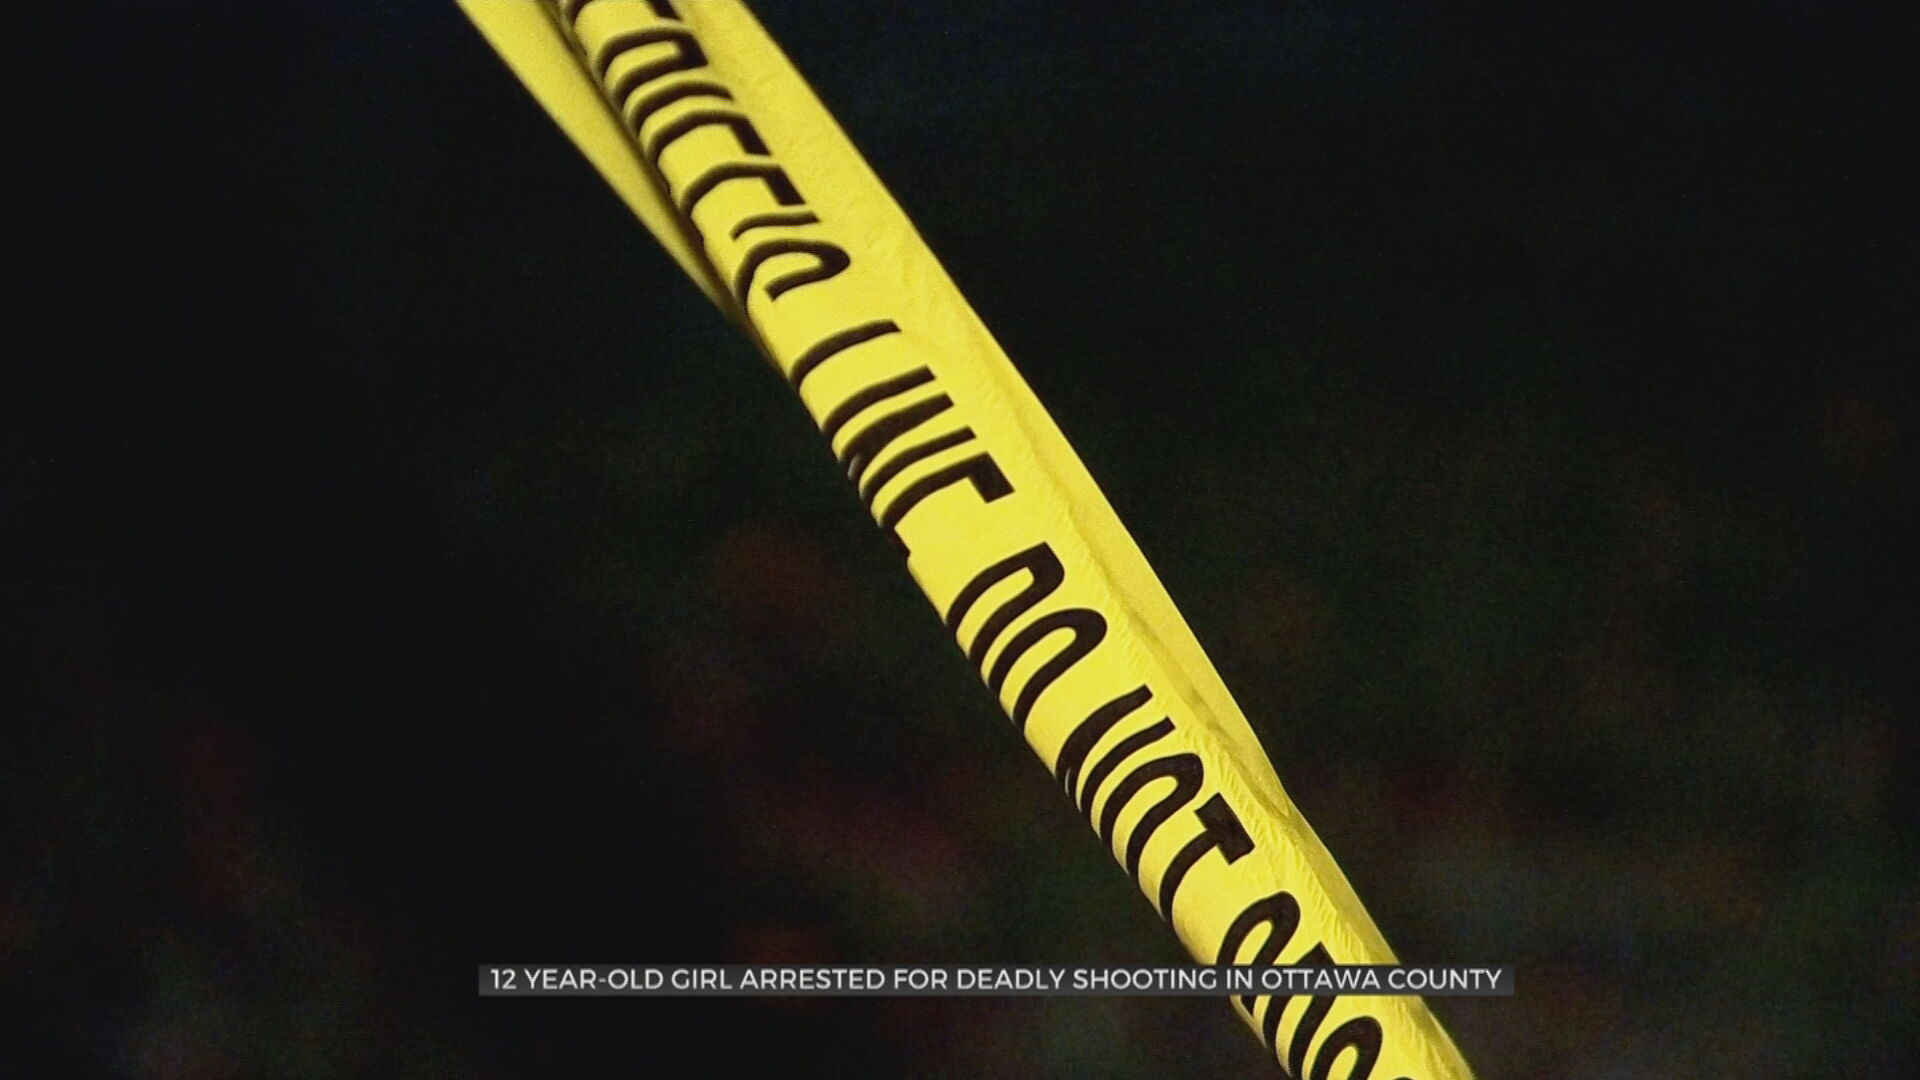 12-Year-Old Girl Arrested For Deadly Shooting In Ottawa County